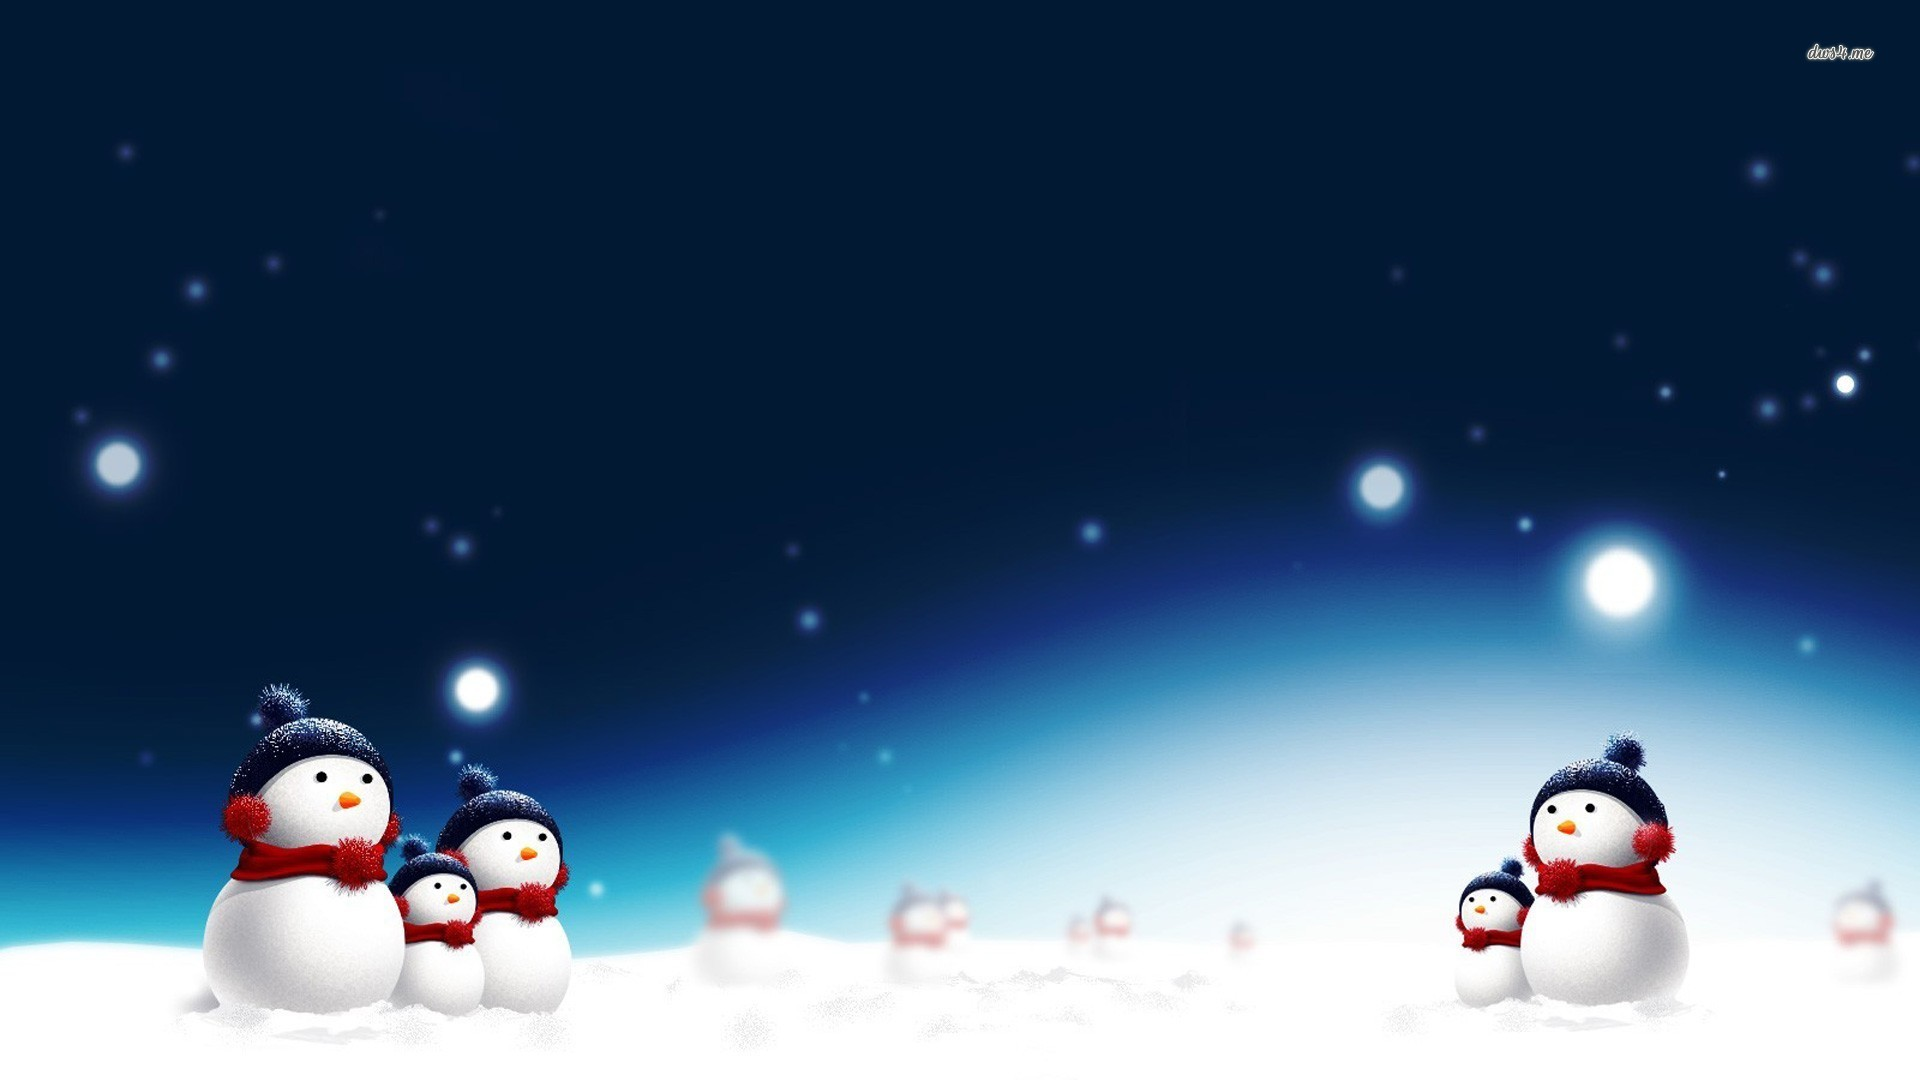 Free Holiday Wallpaper For Desktop